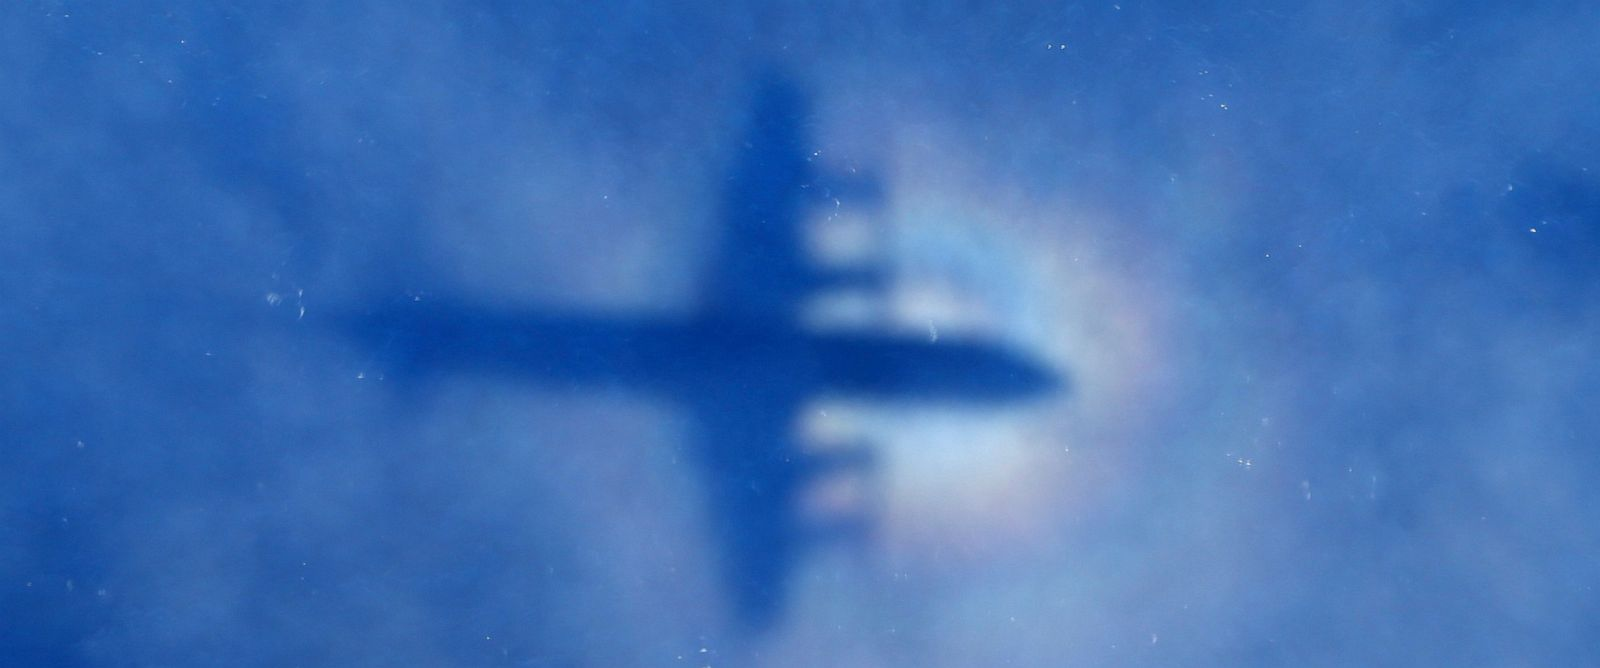 PHOTO:In this March 31, 2014 file photo, a shadow of a Royal New Zealand Air Force P-3 Orion aircraft is seen on low cloud cover while it searches for missing Malaysia Airlines Flight MH370 in the southern Indian Ocean.